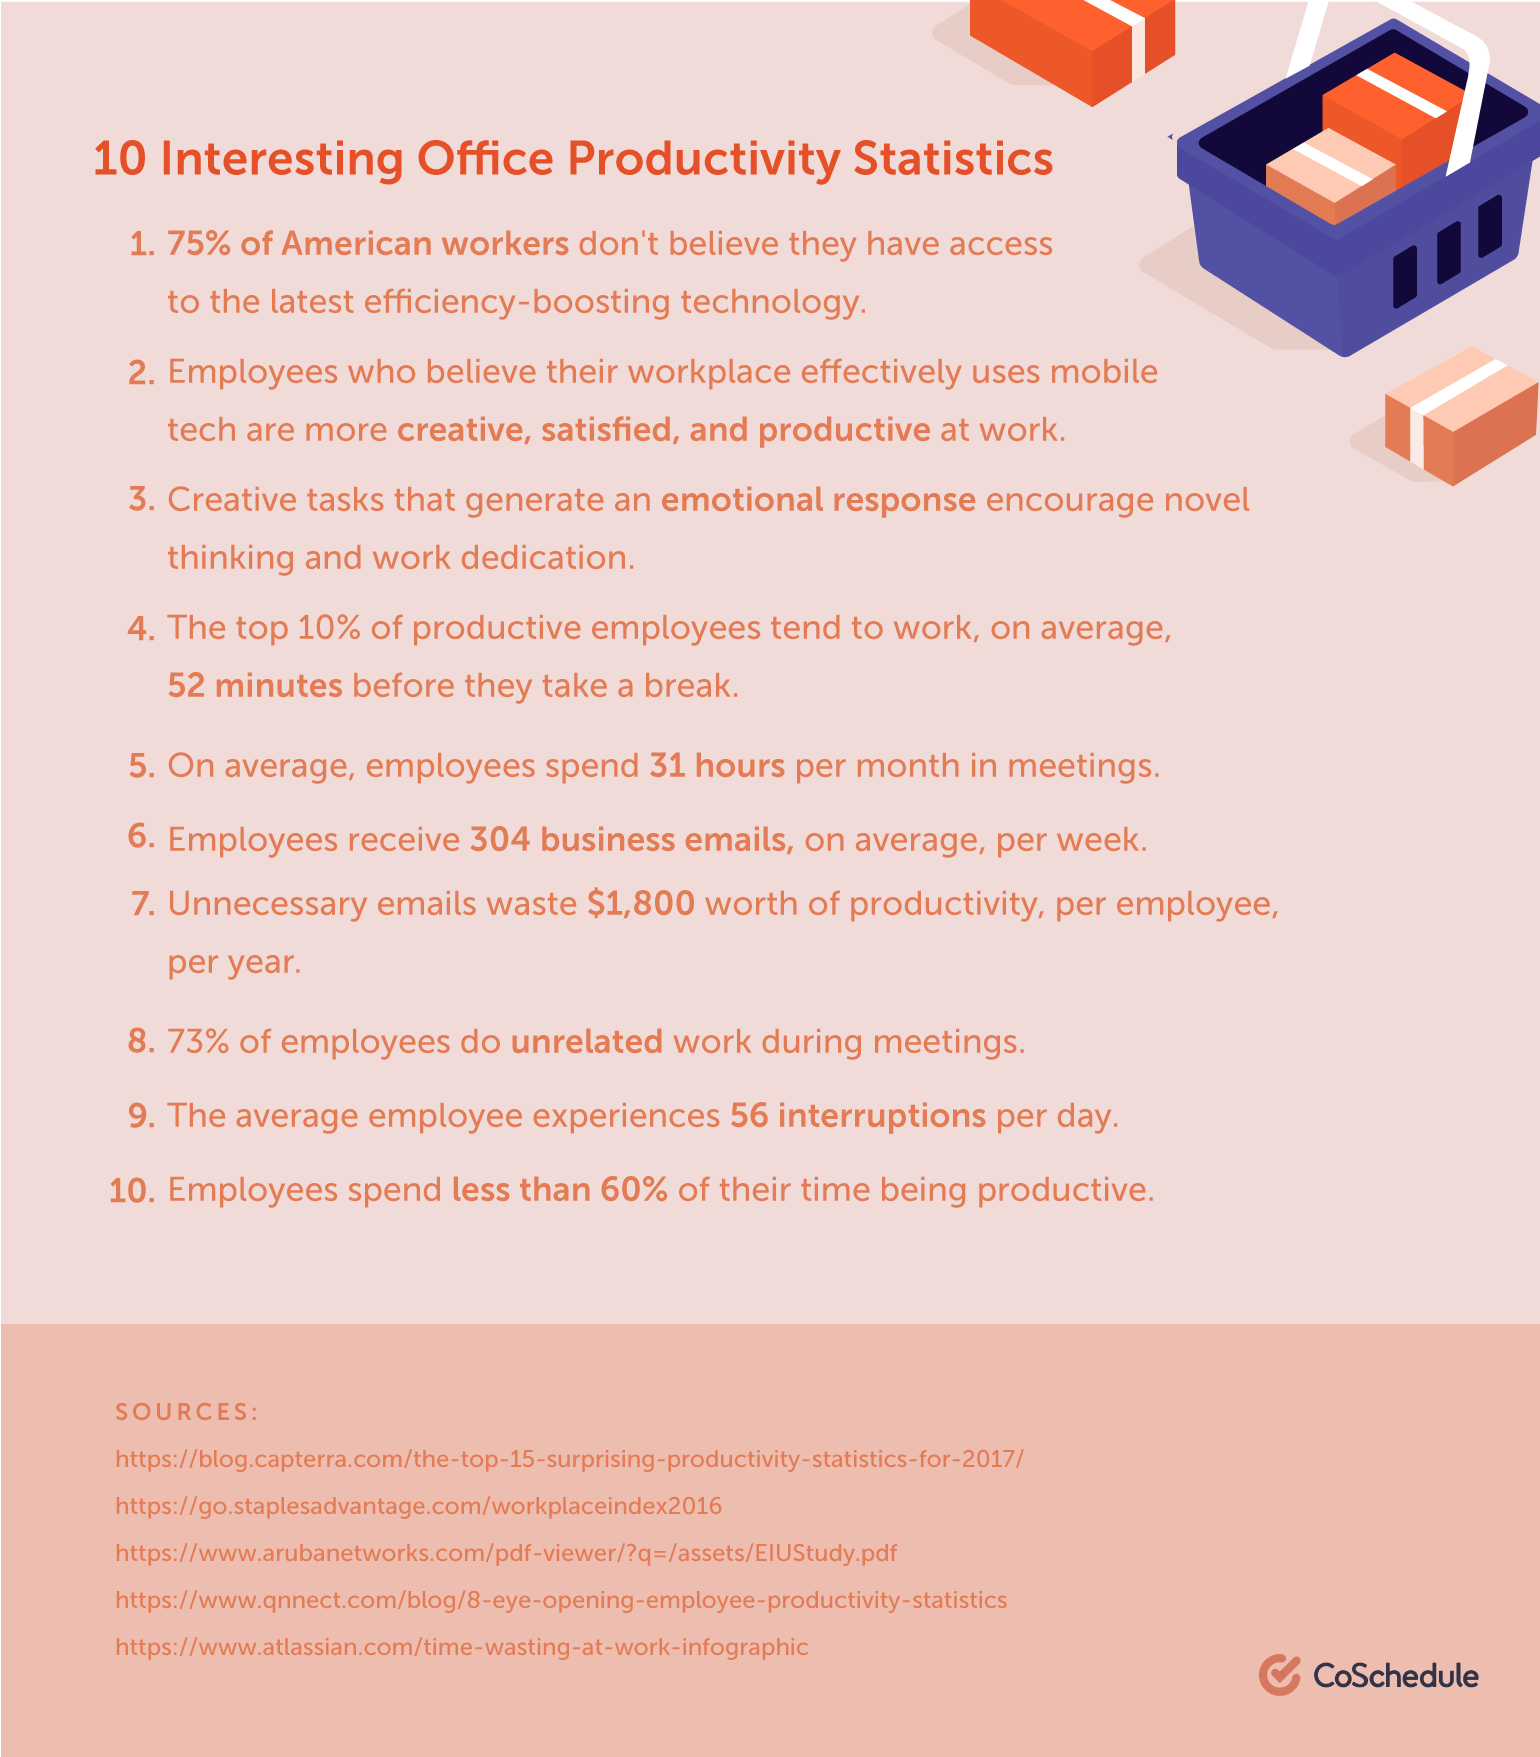 10 Interesting Office Productivity Statistics